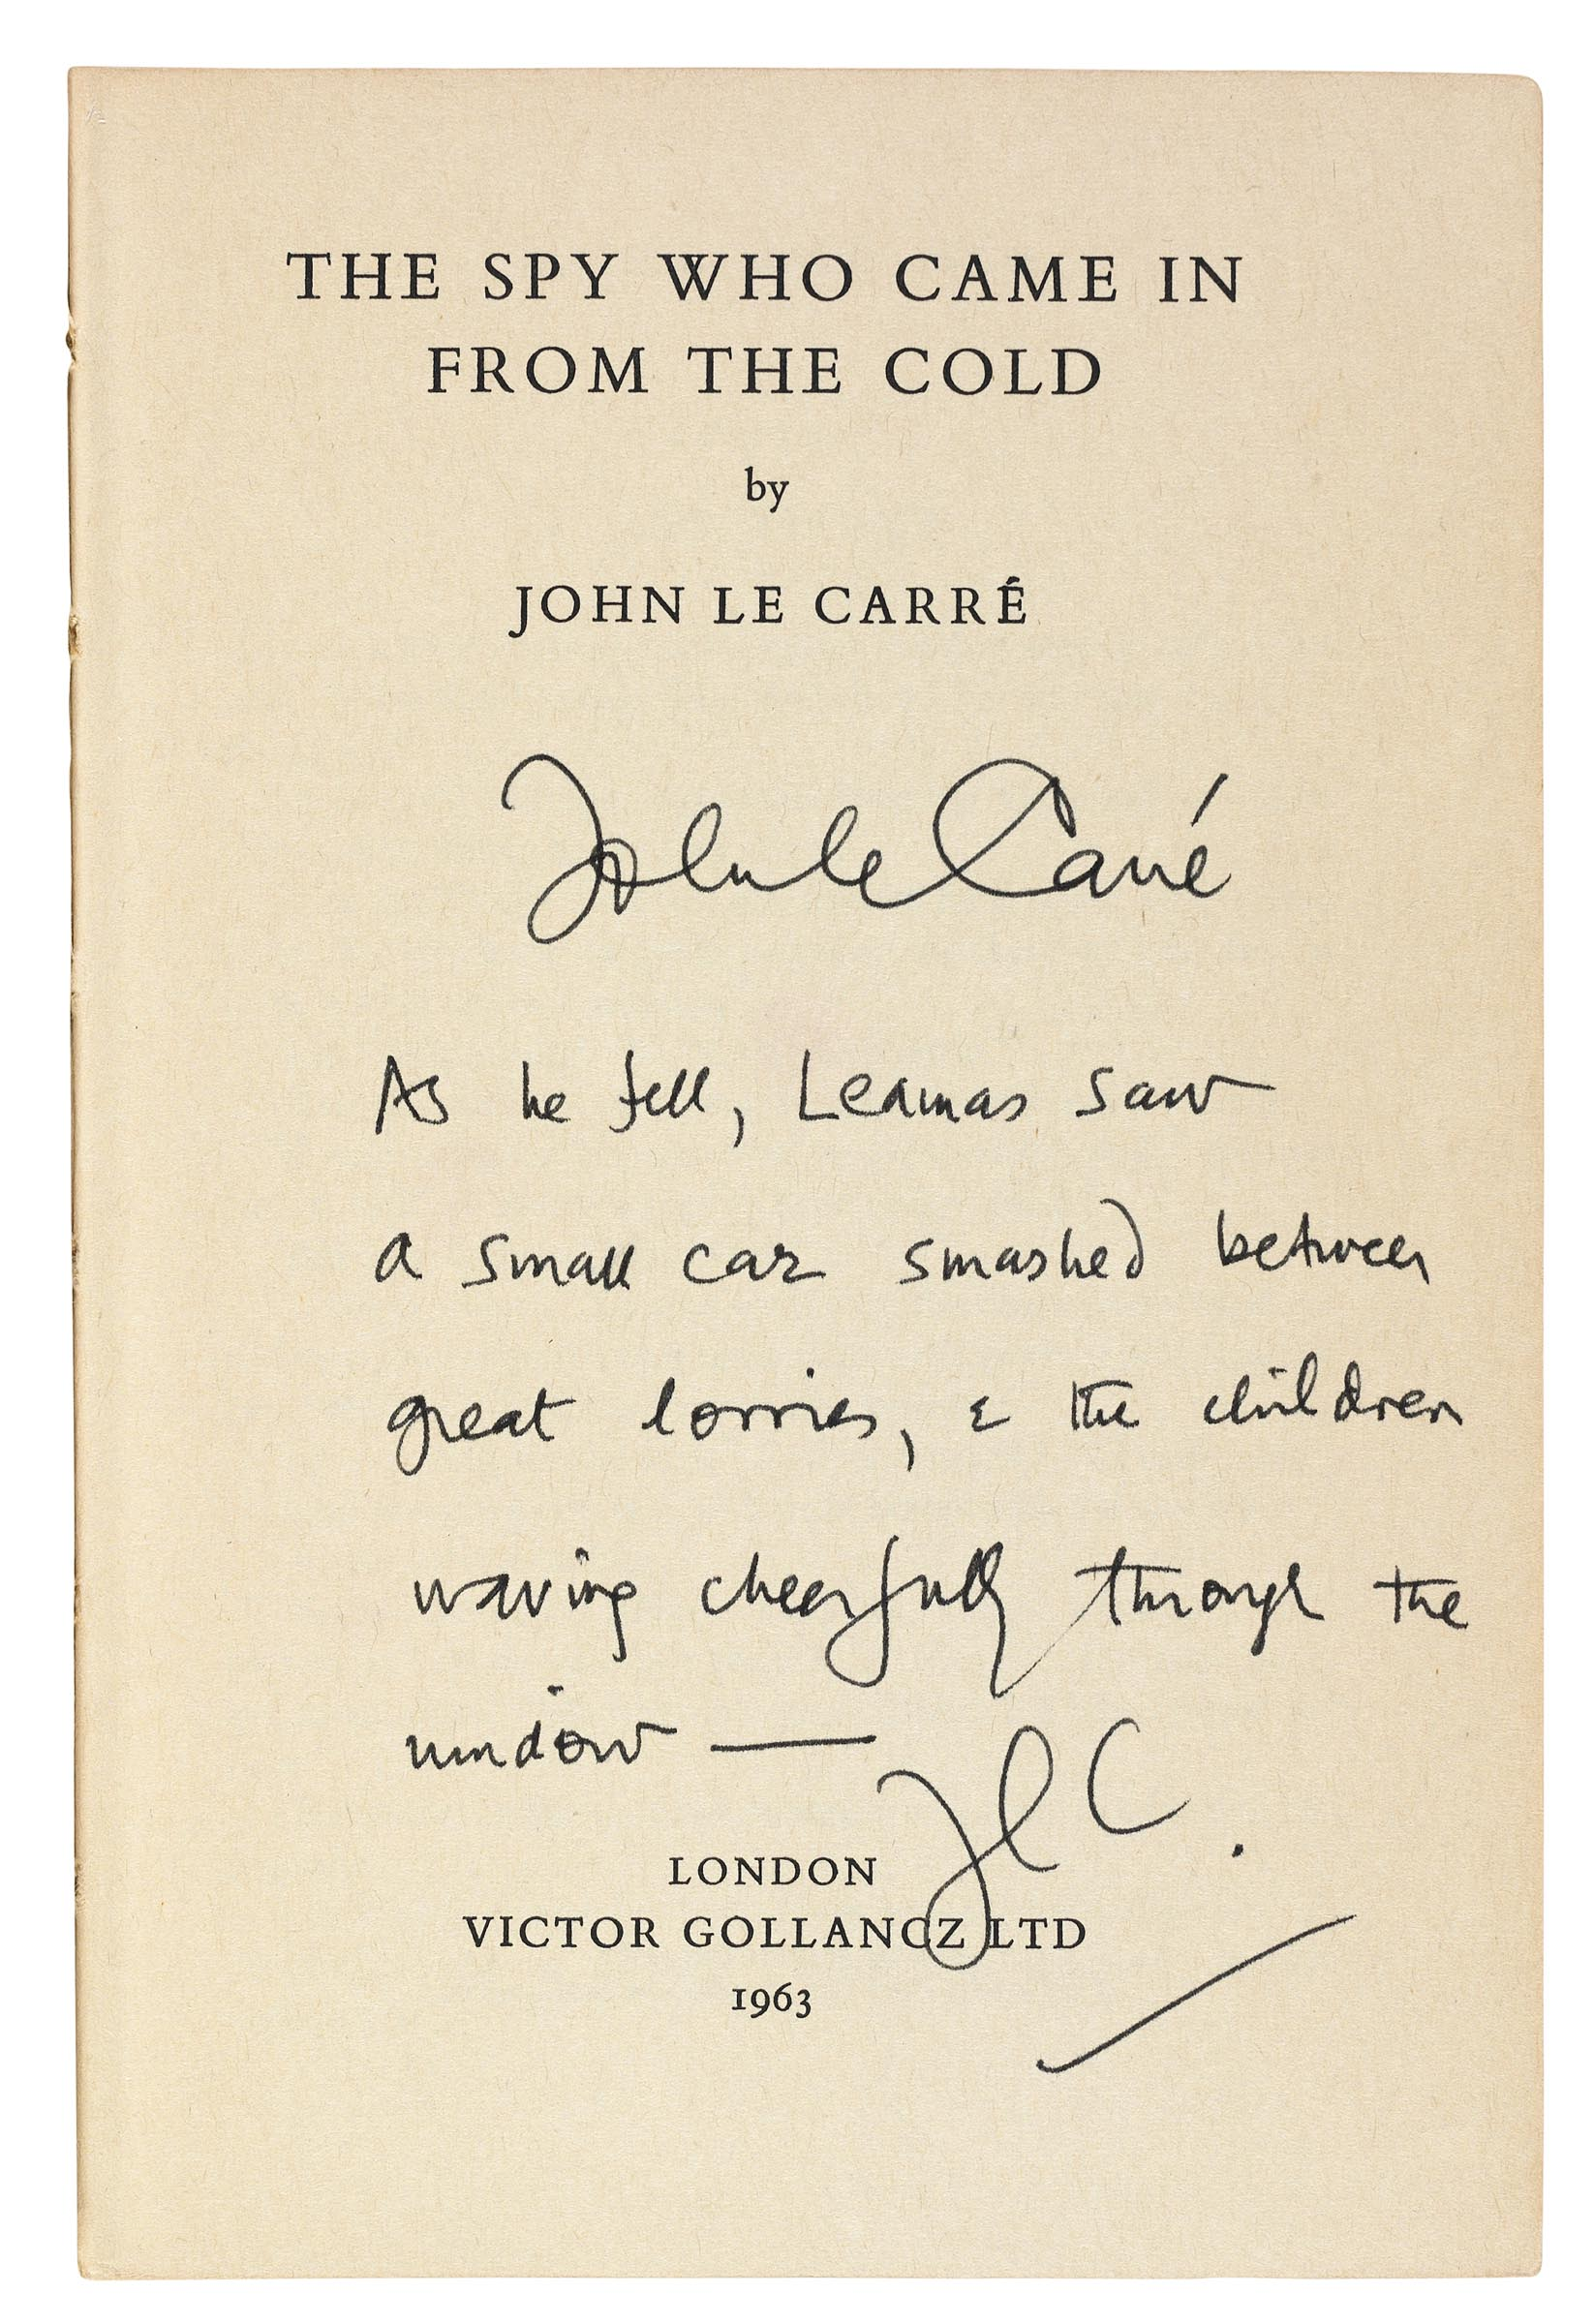 LE CARRÉ, John (b.1931). The Spy Who Came in from the Cold. London: Victor Gollancz, 1963. 8° (185 x 123mm). (A few tiny stains.) Original blue cloth, red and white dust-jacket with price of 18/-, modern cloth box by the Temple Bindery (spine faded, spine of jacket rubbed, back panel stained).